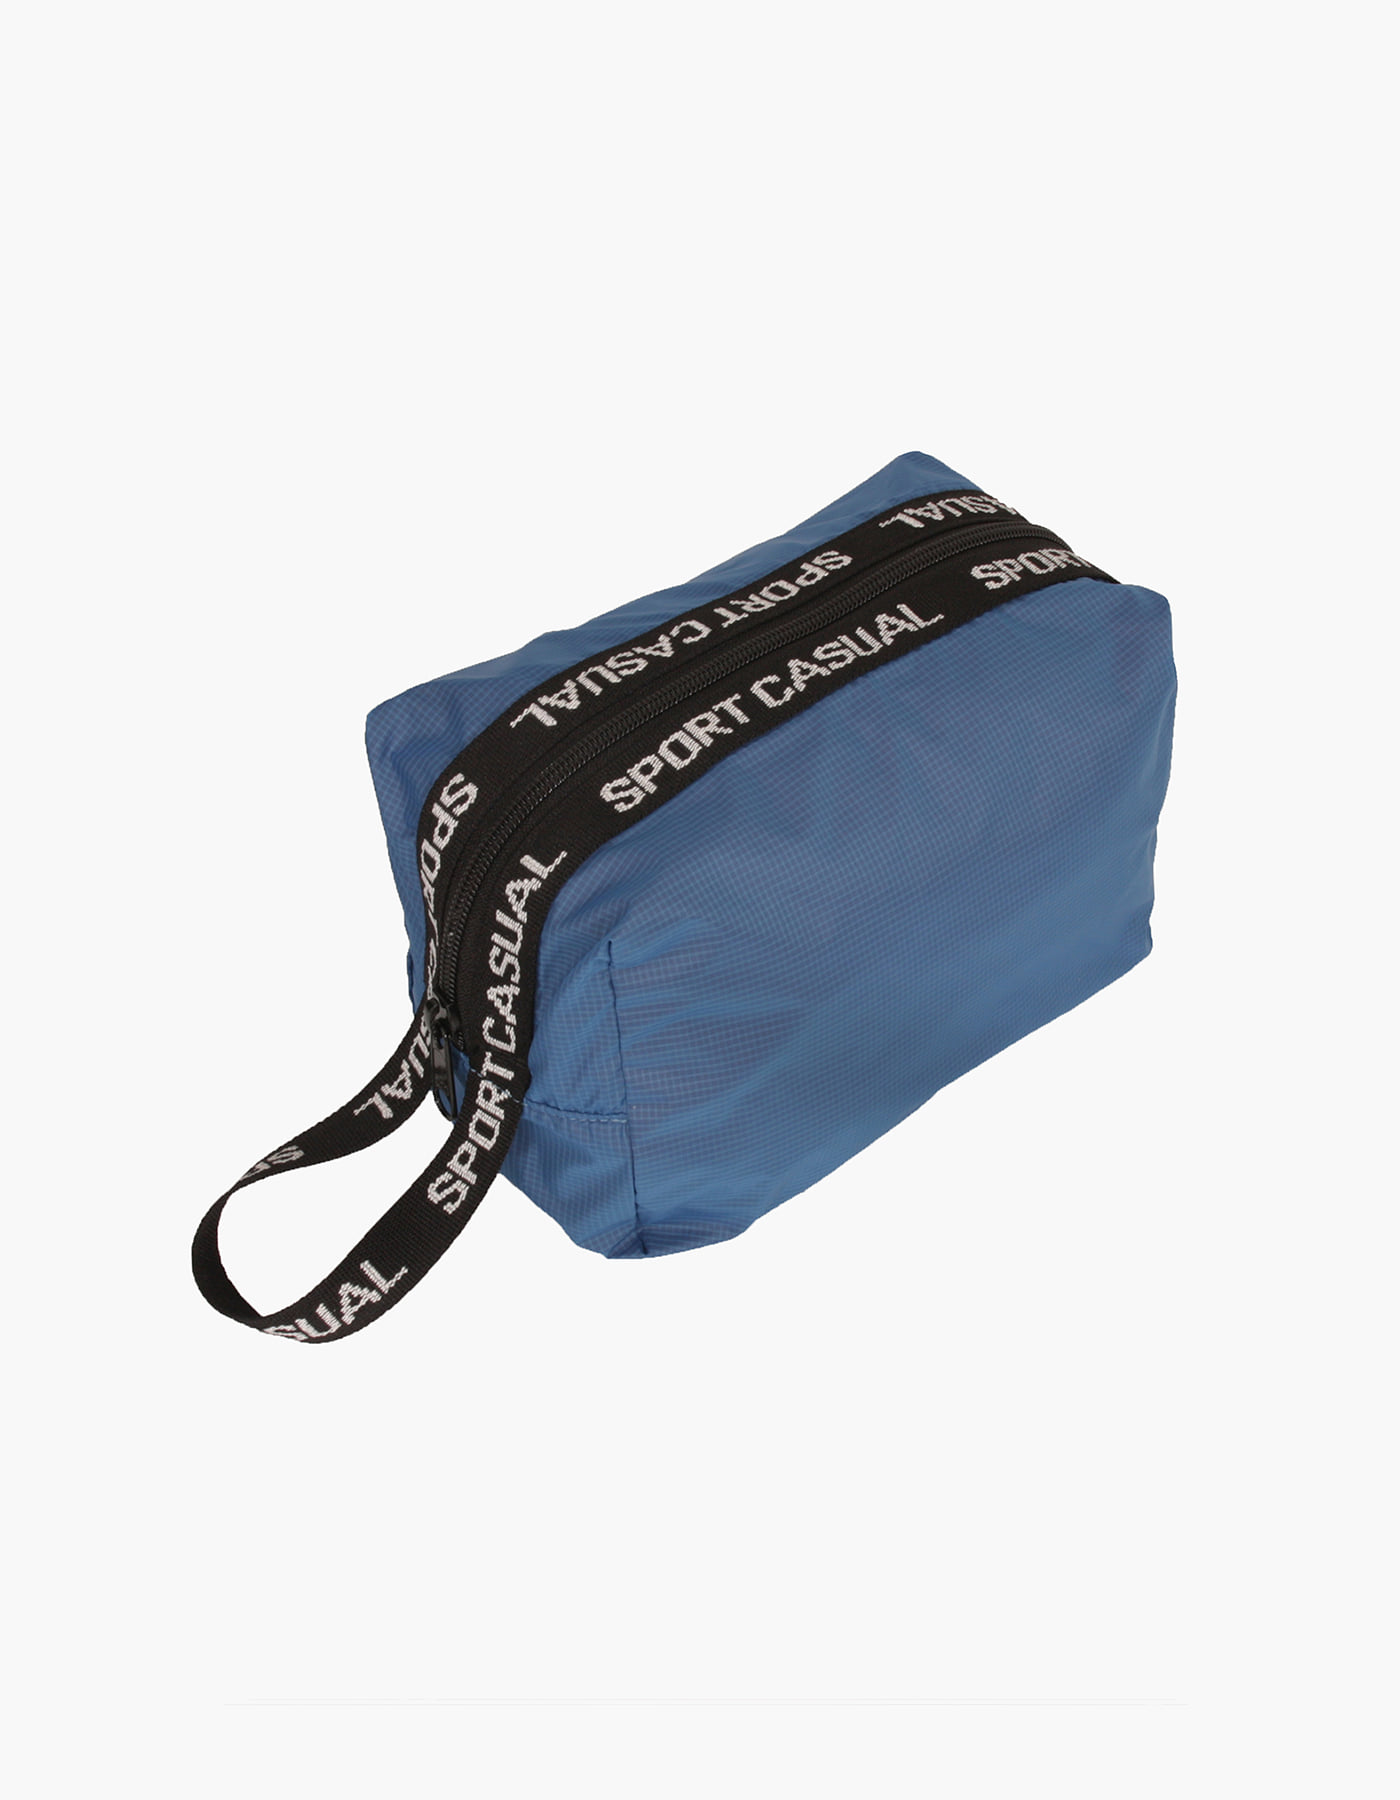 SPORTS POUCH / BLUE (RIPSTOP)